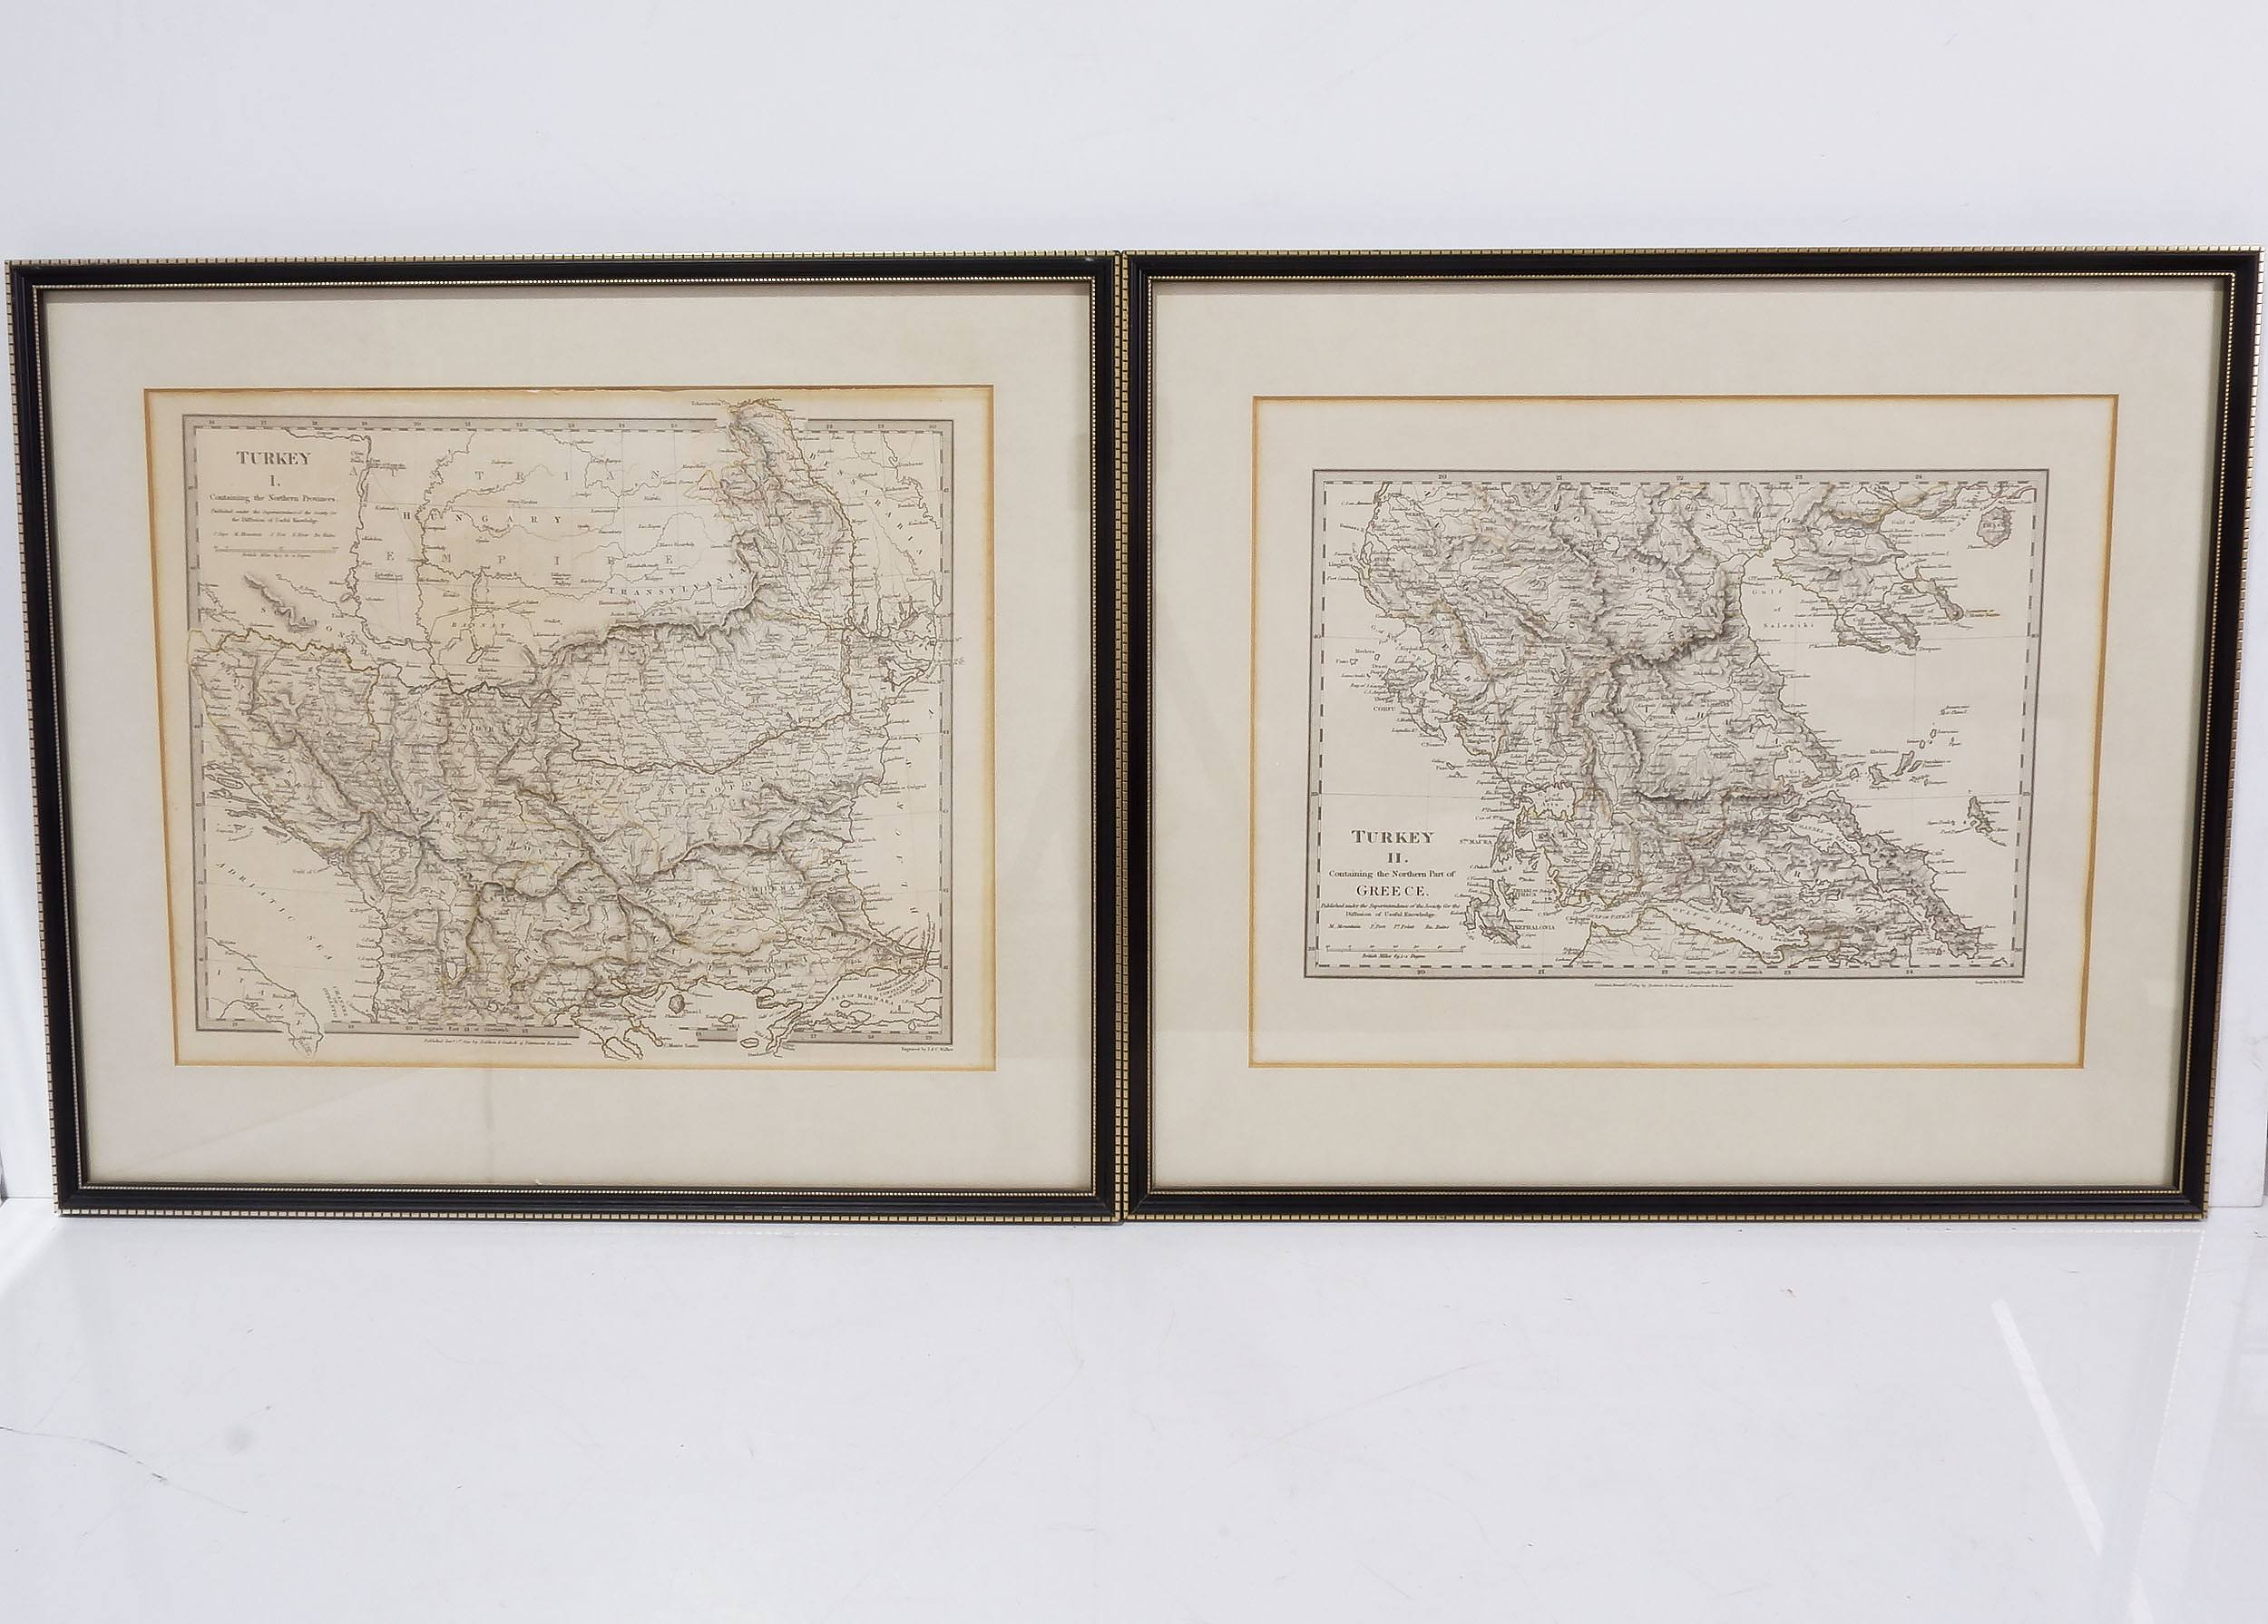 'Two Antiquarian Maps of Turkey'